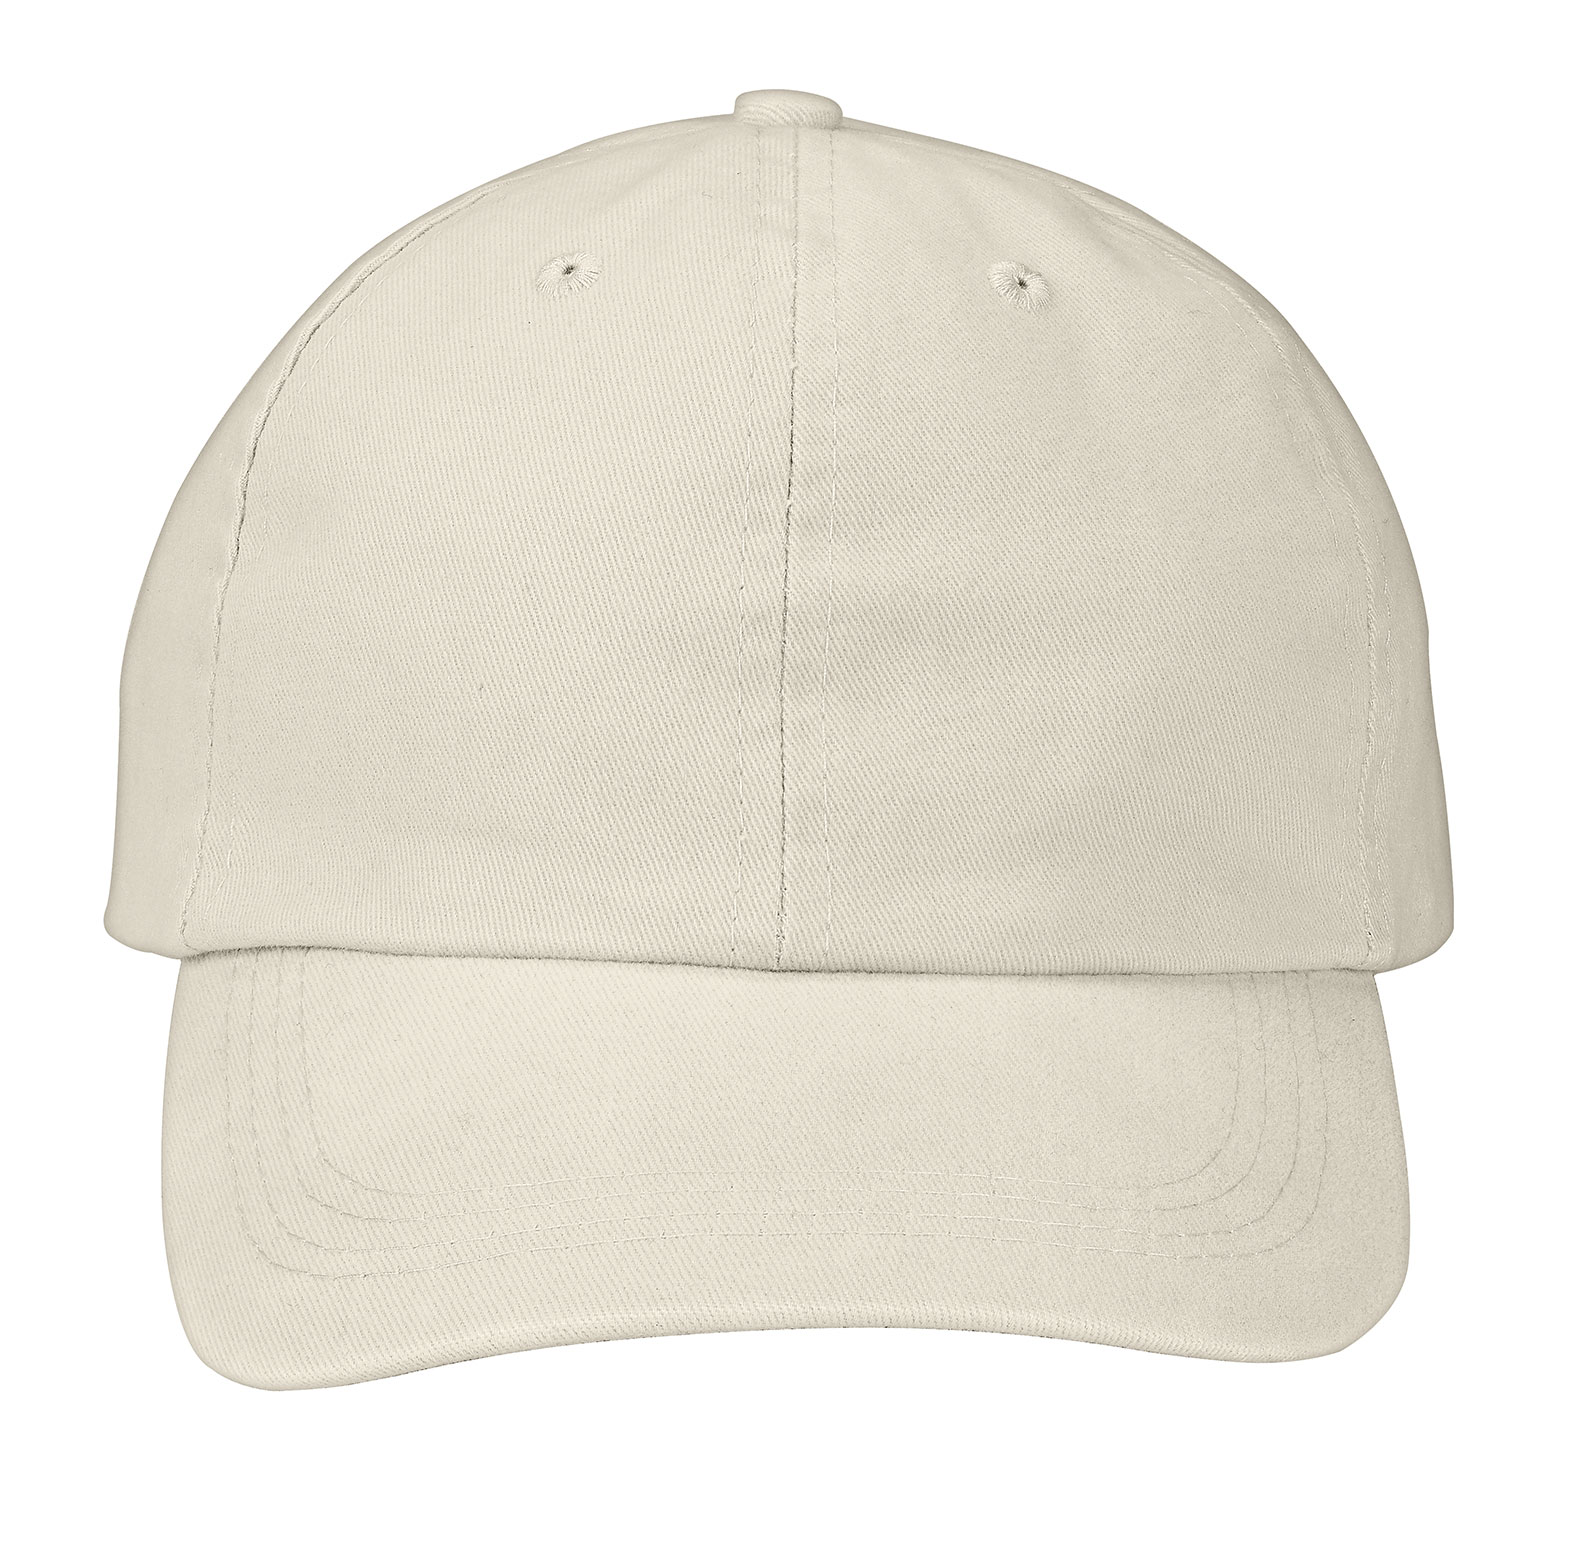 The Gap Cap with Adjustable Buckle Back